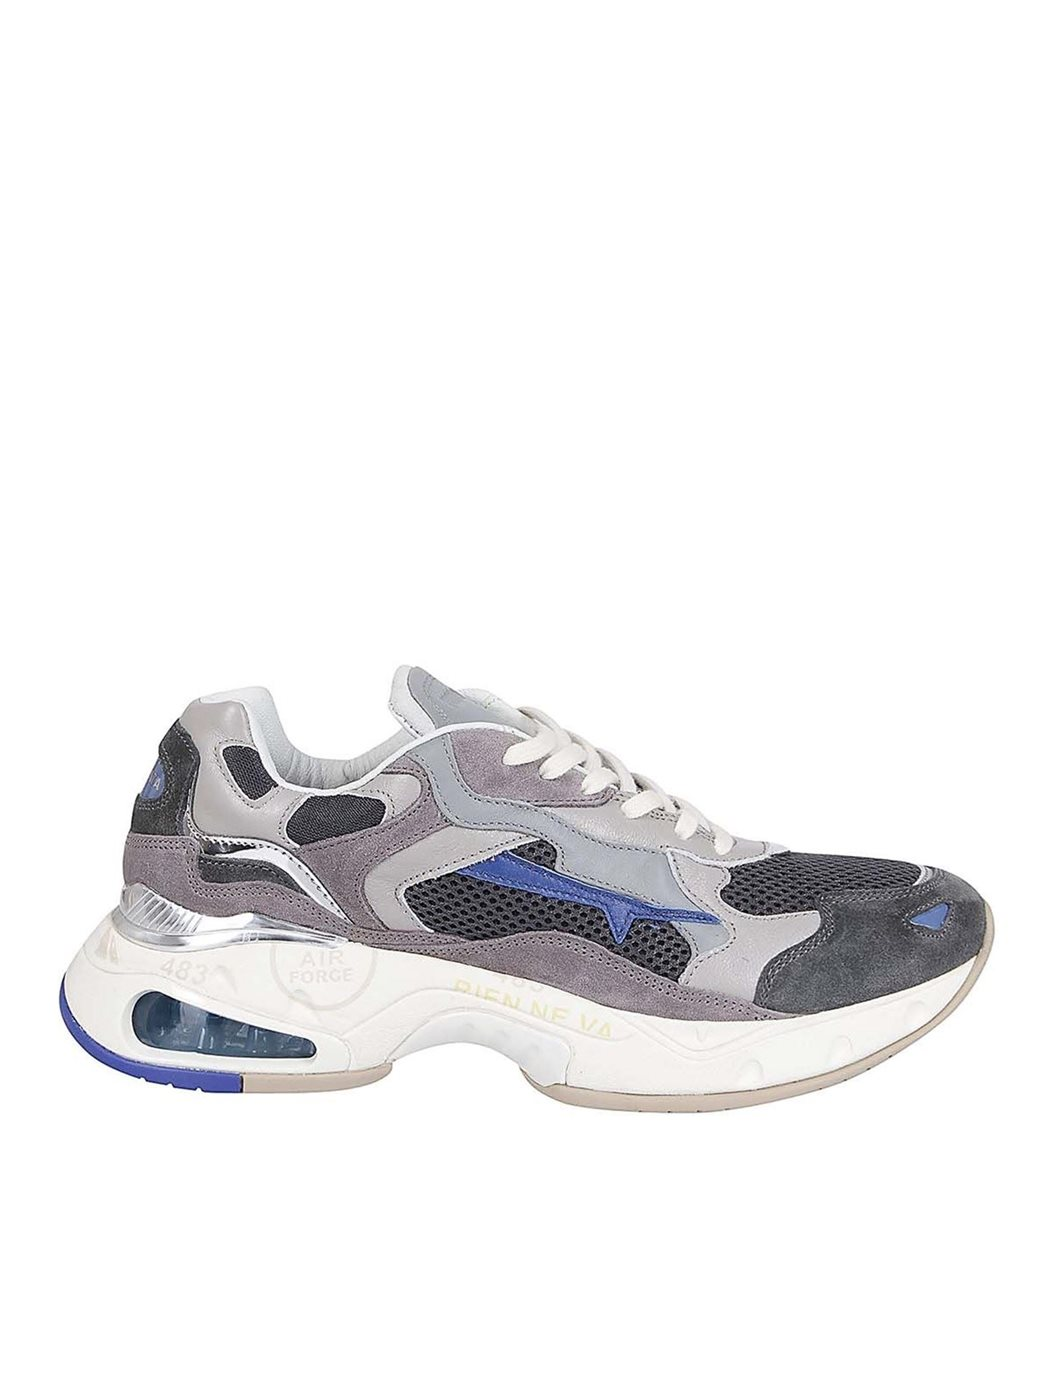 PREMIATA SHARKY . SNEAKERS